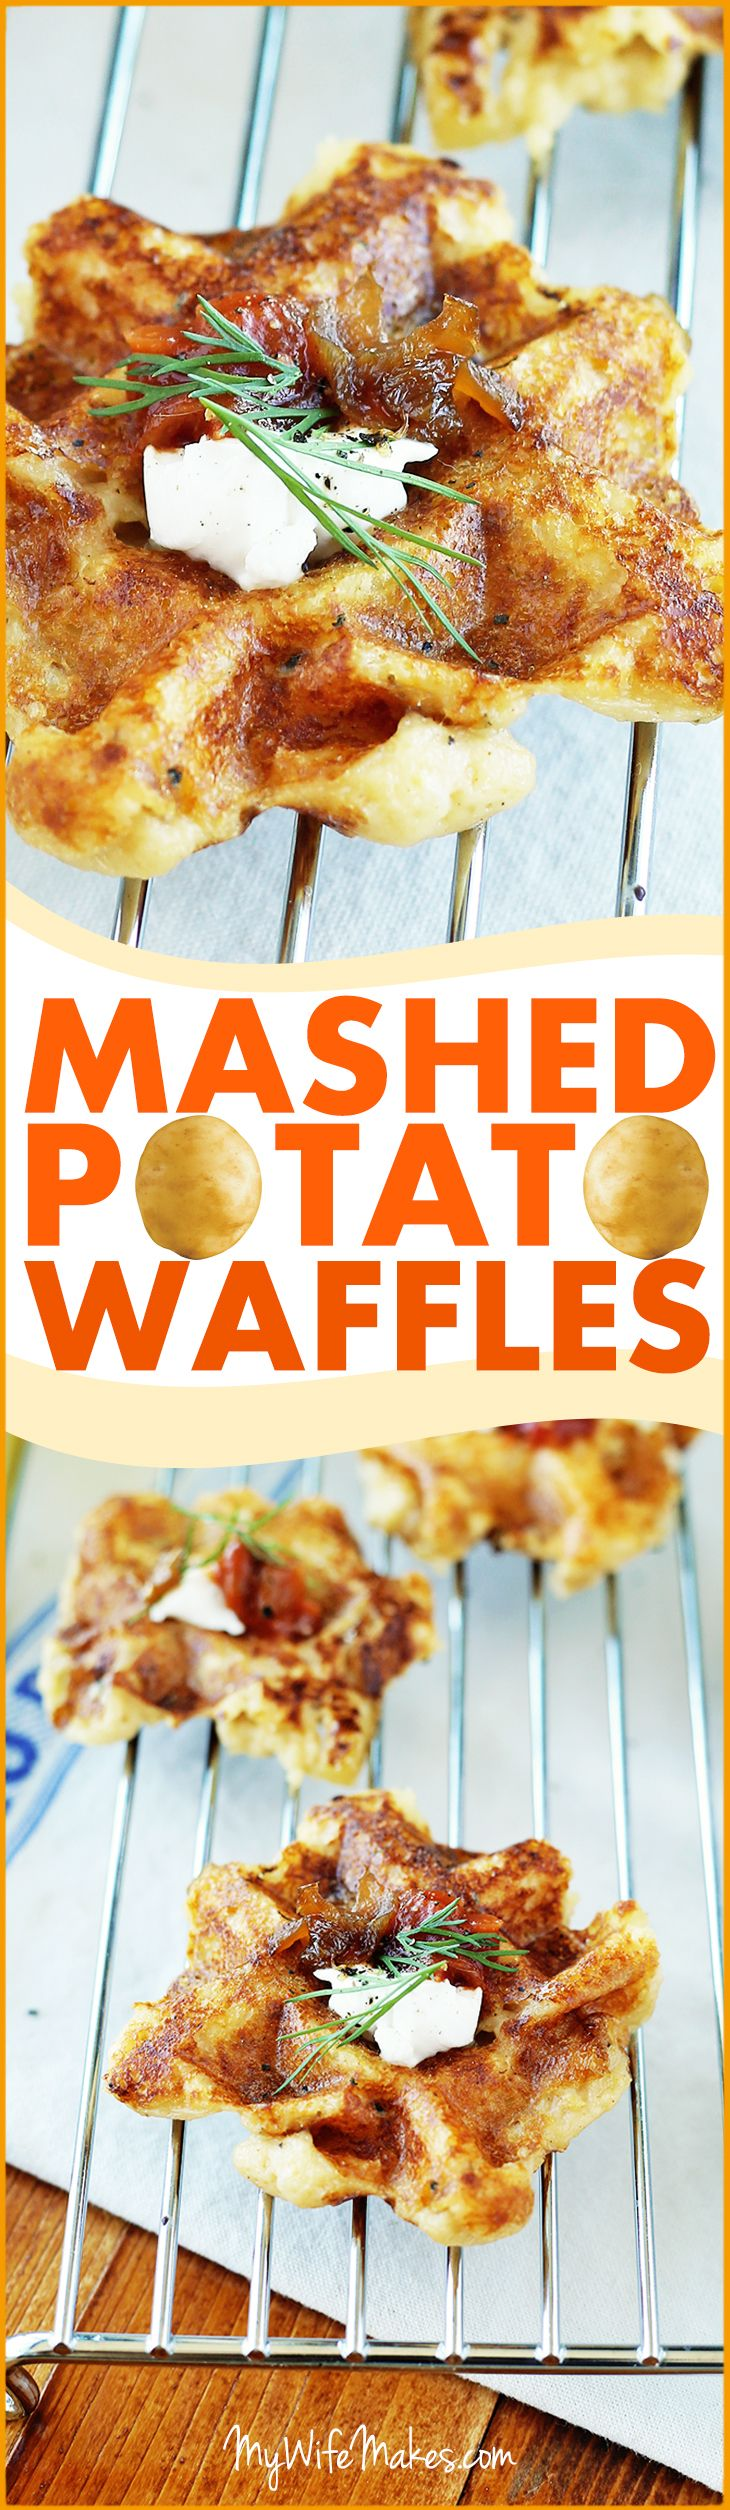 Simple vegan Mashed Potato Waffles; moist and crispy on the outside, warm and creamy on the inside. These potato waffles also go great with salsa, vegan cream cheese, and caramelized onions (gotta love 'em onions!). #vegan #potatowaffles #potato #waffles #recipe #veganrecipe